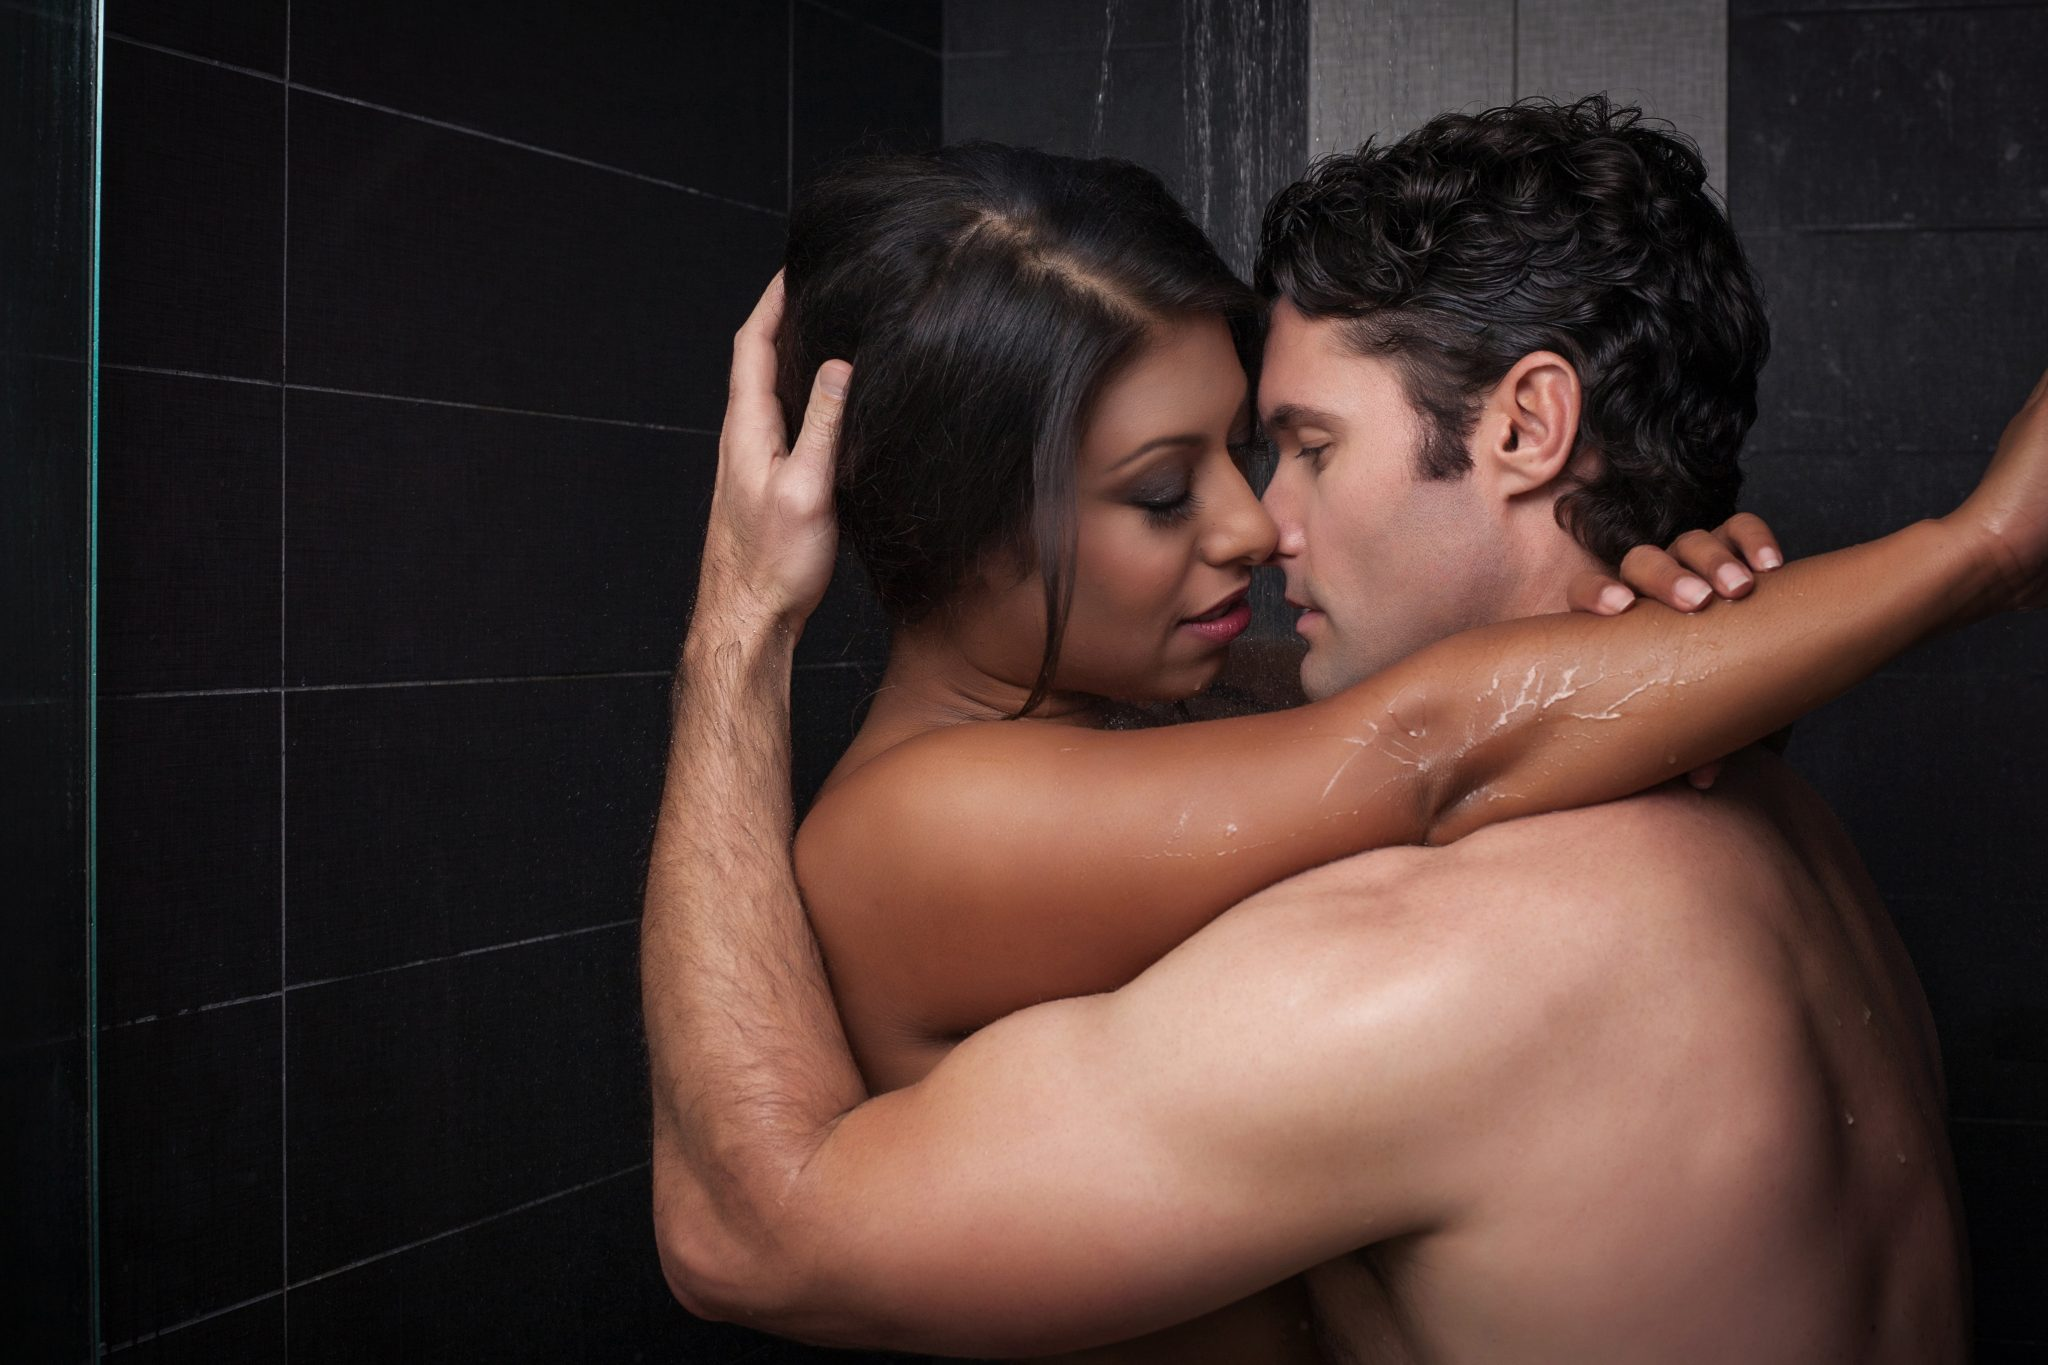 steamy shower scene for couples boudoir photo